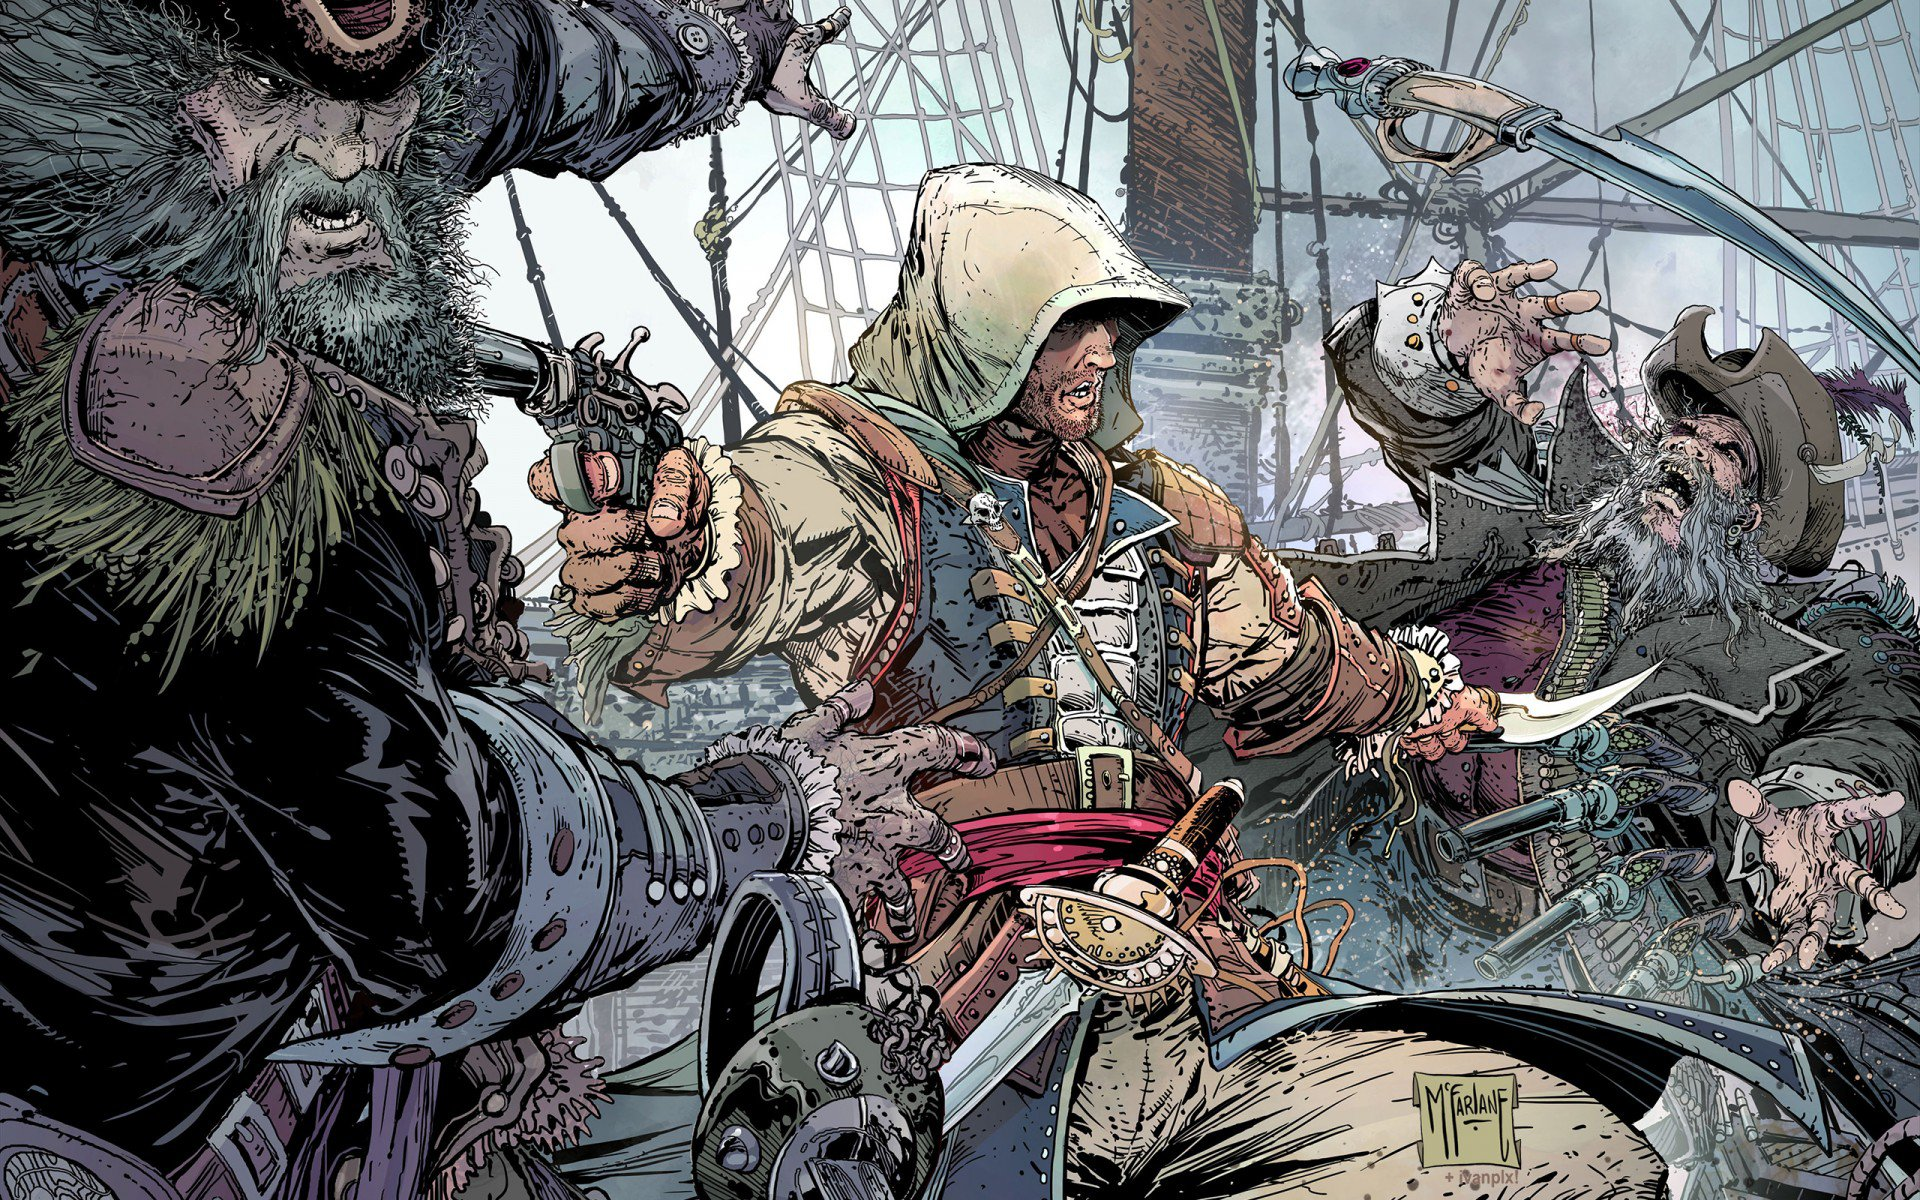 a a in' creed 4: black flag, edward kenway, пистоль, пират